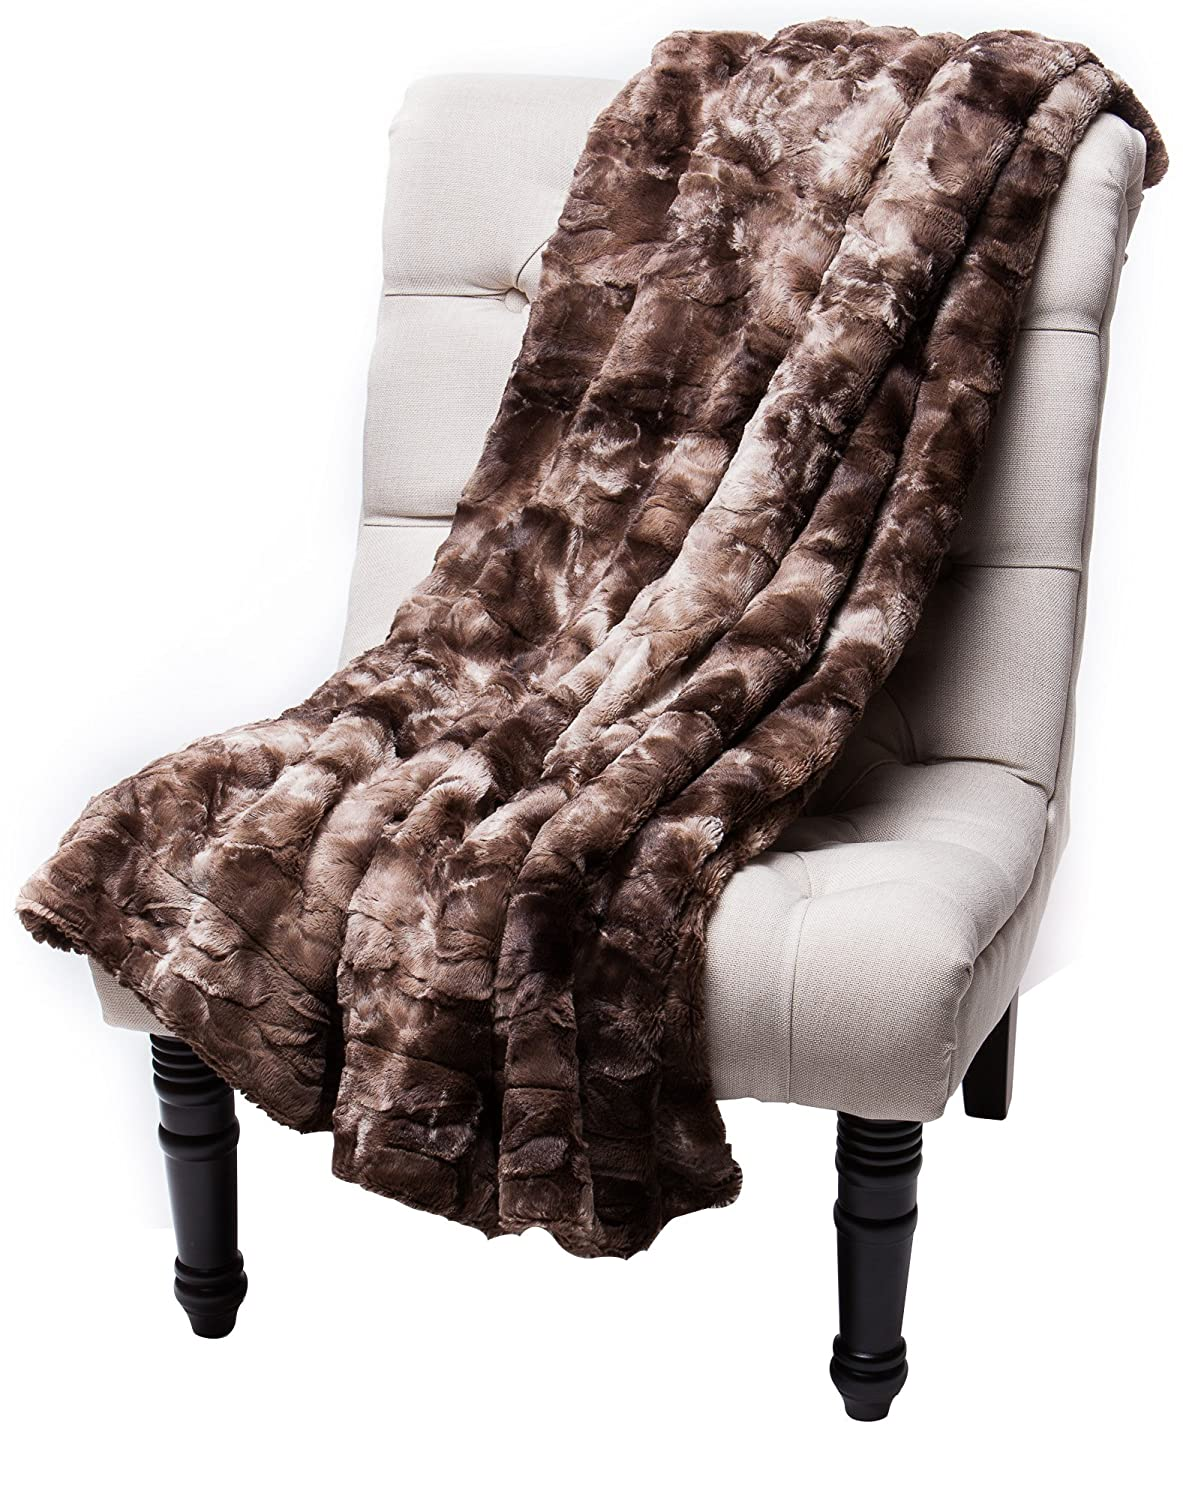 Chanasya Super Soft Fuzzy Fur Faux Fur Cozy Warm Fluffy Blanket